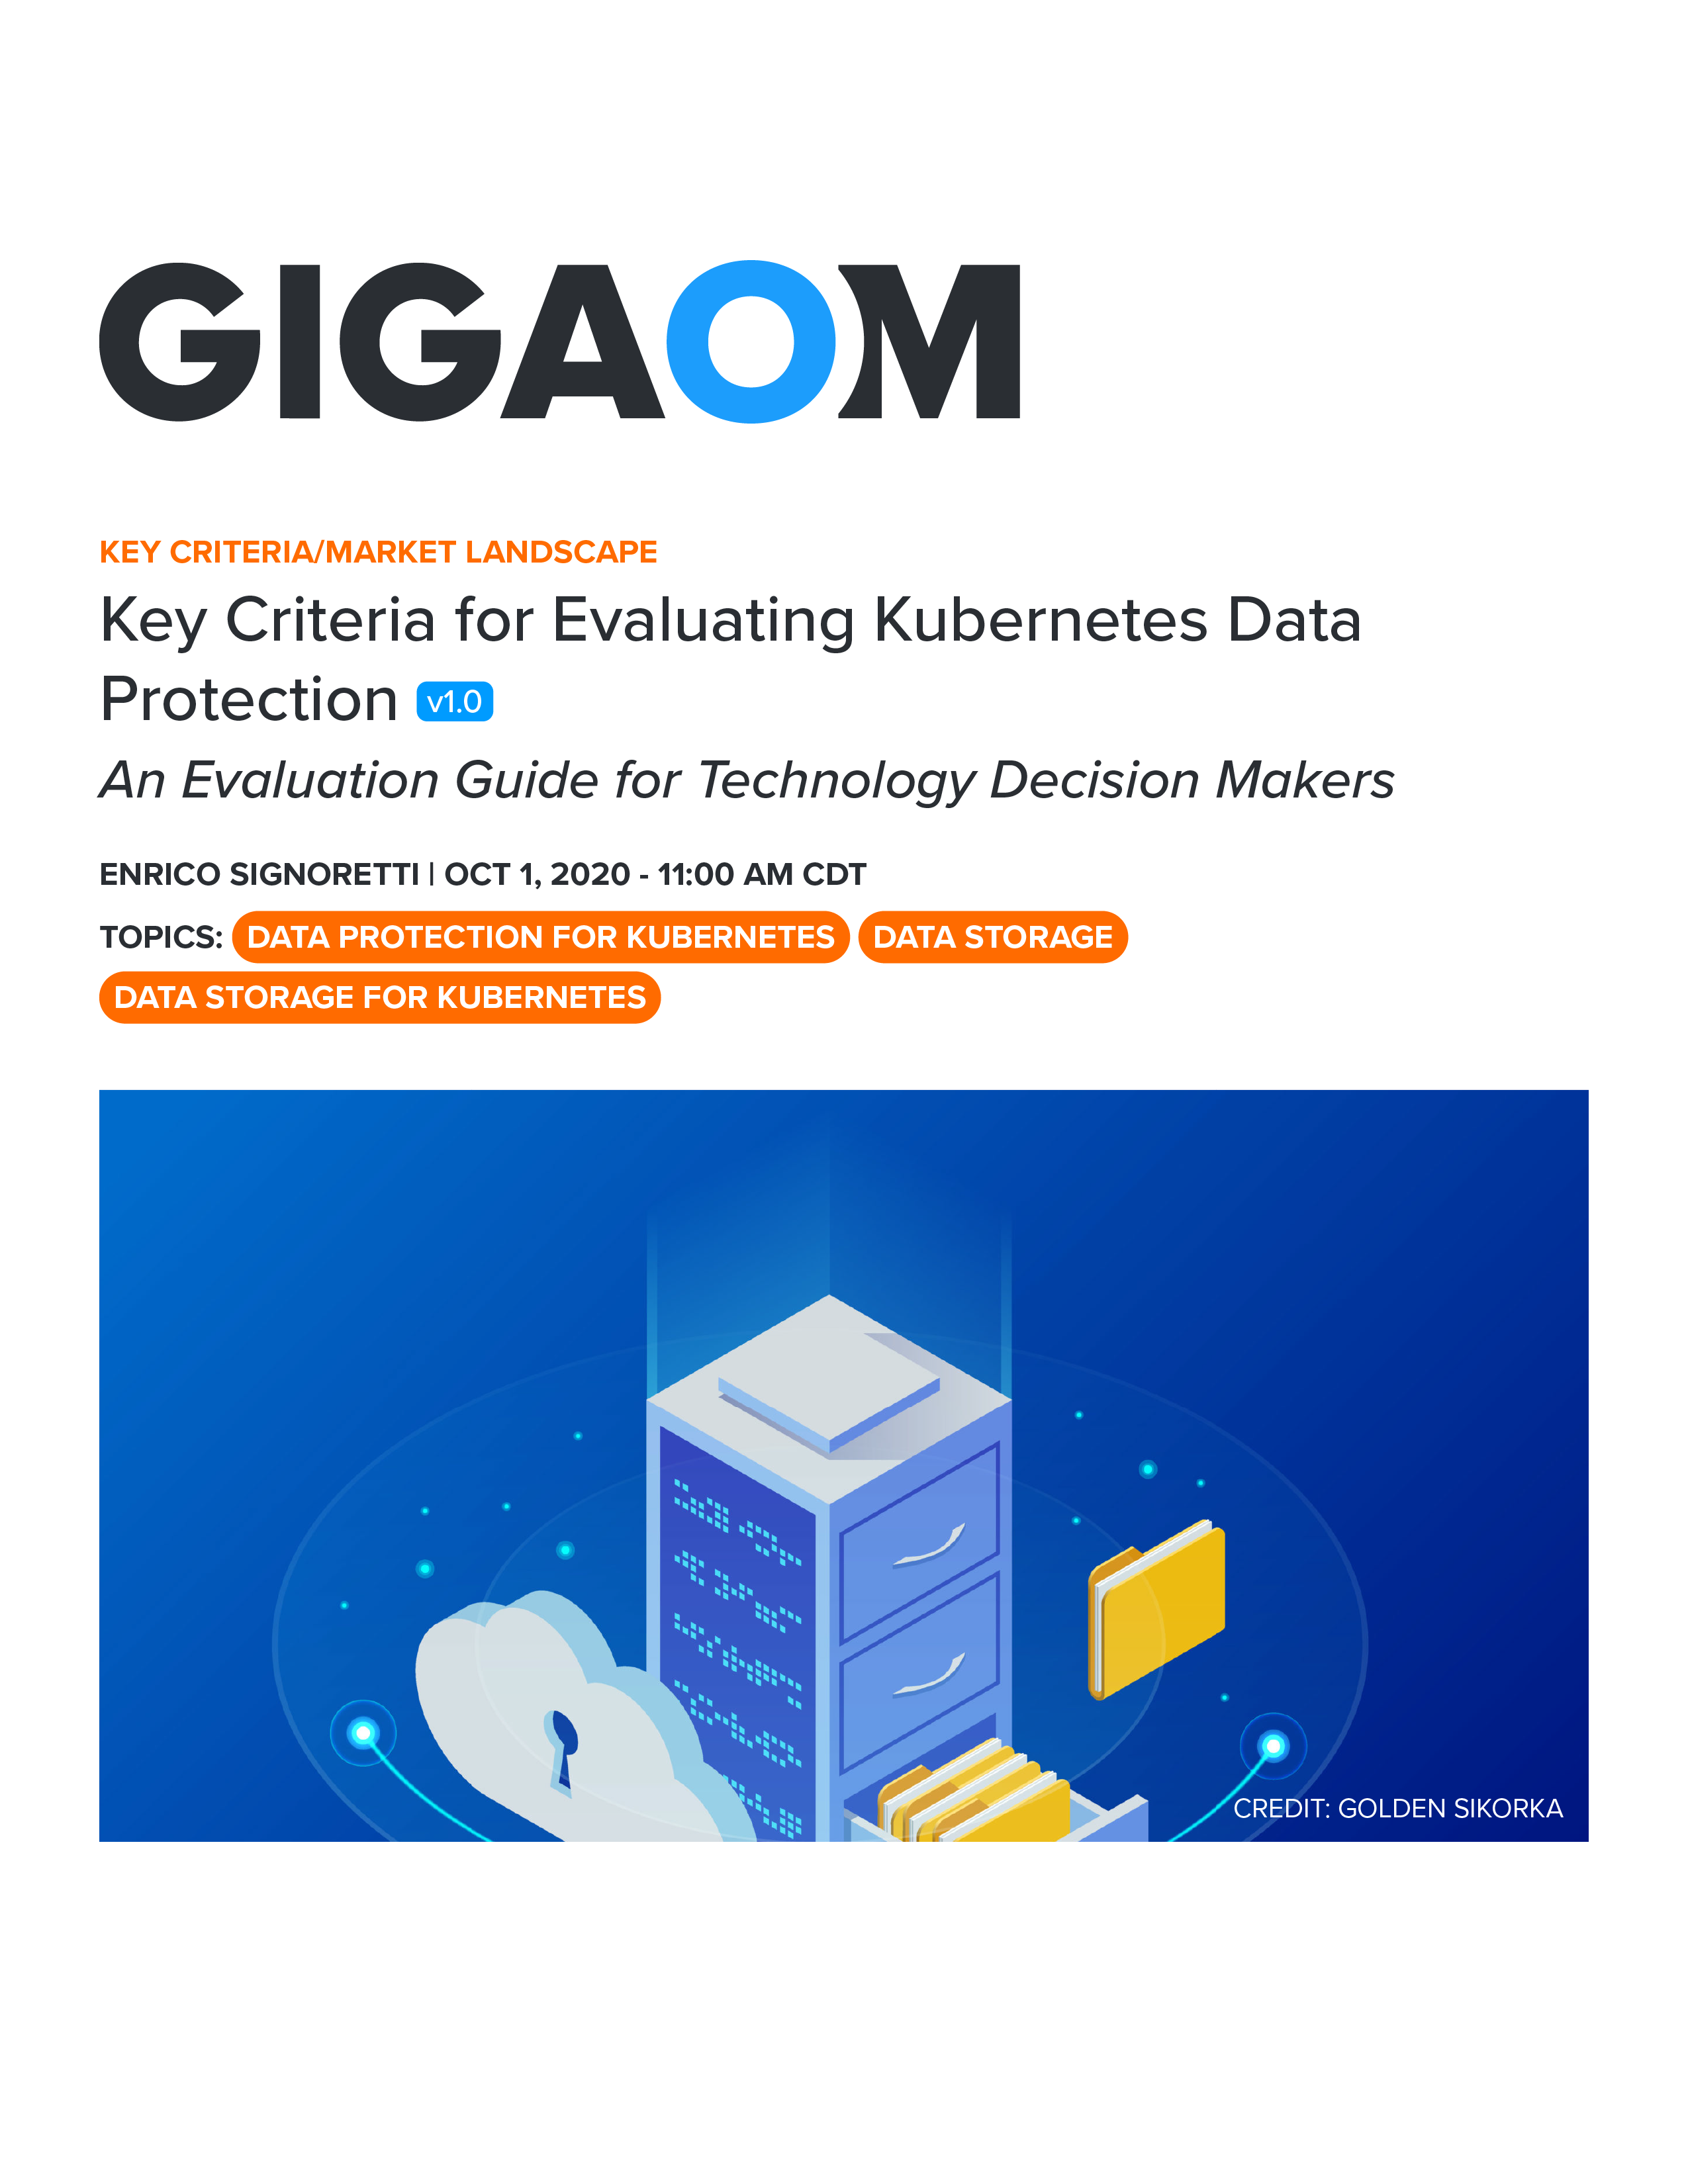 GigaOm Key Criteria for Evaluating Kubernetes Data Protection